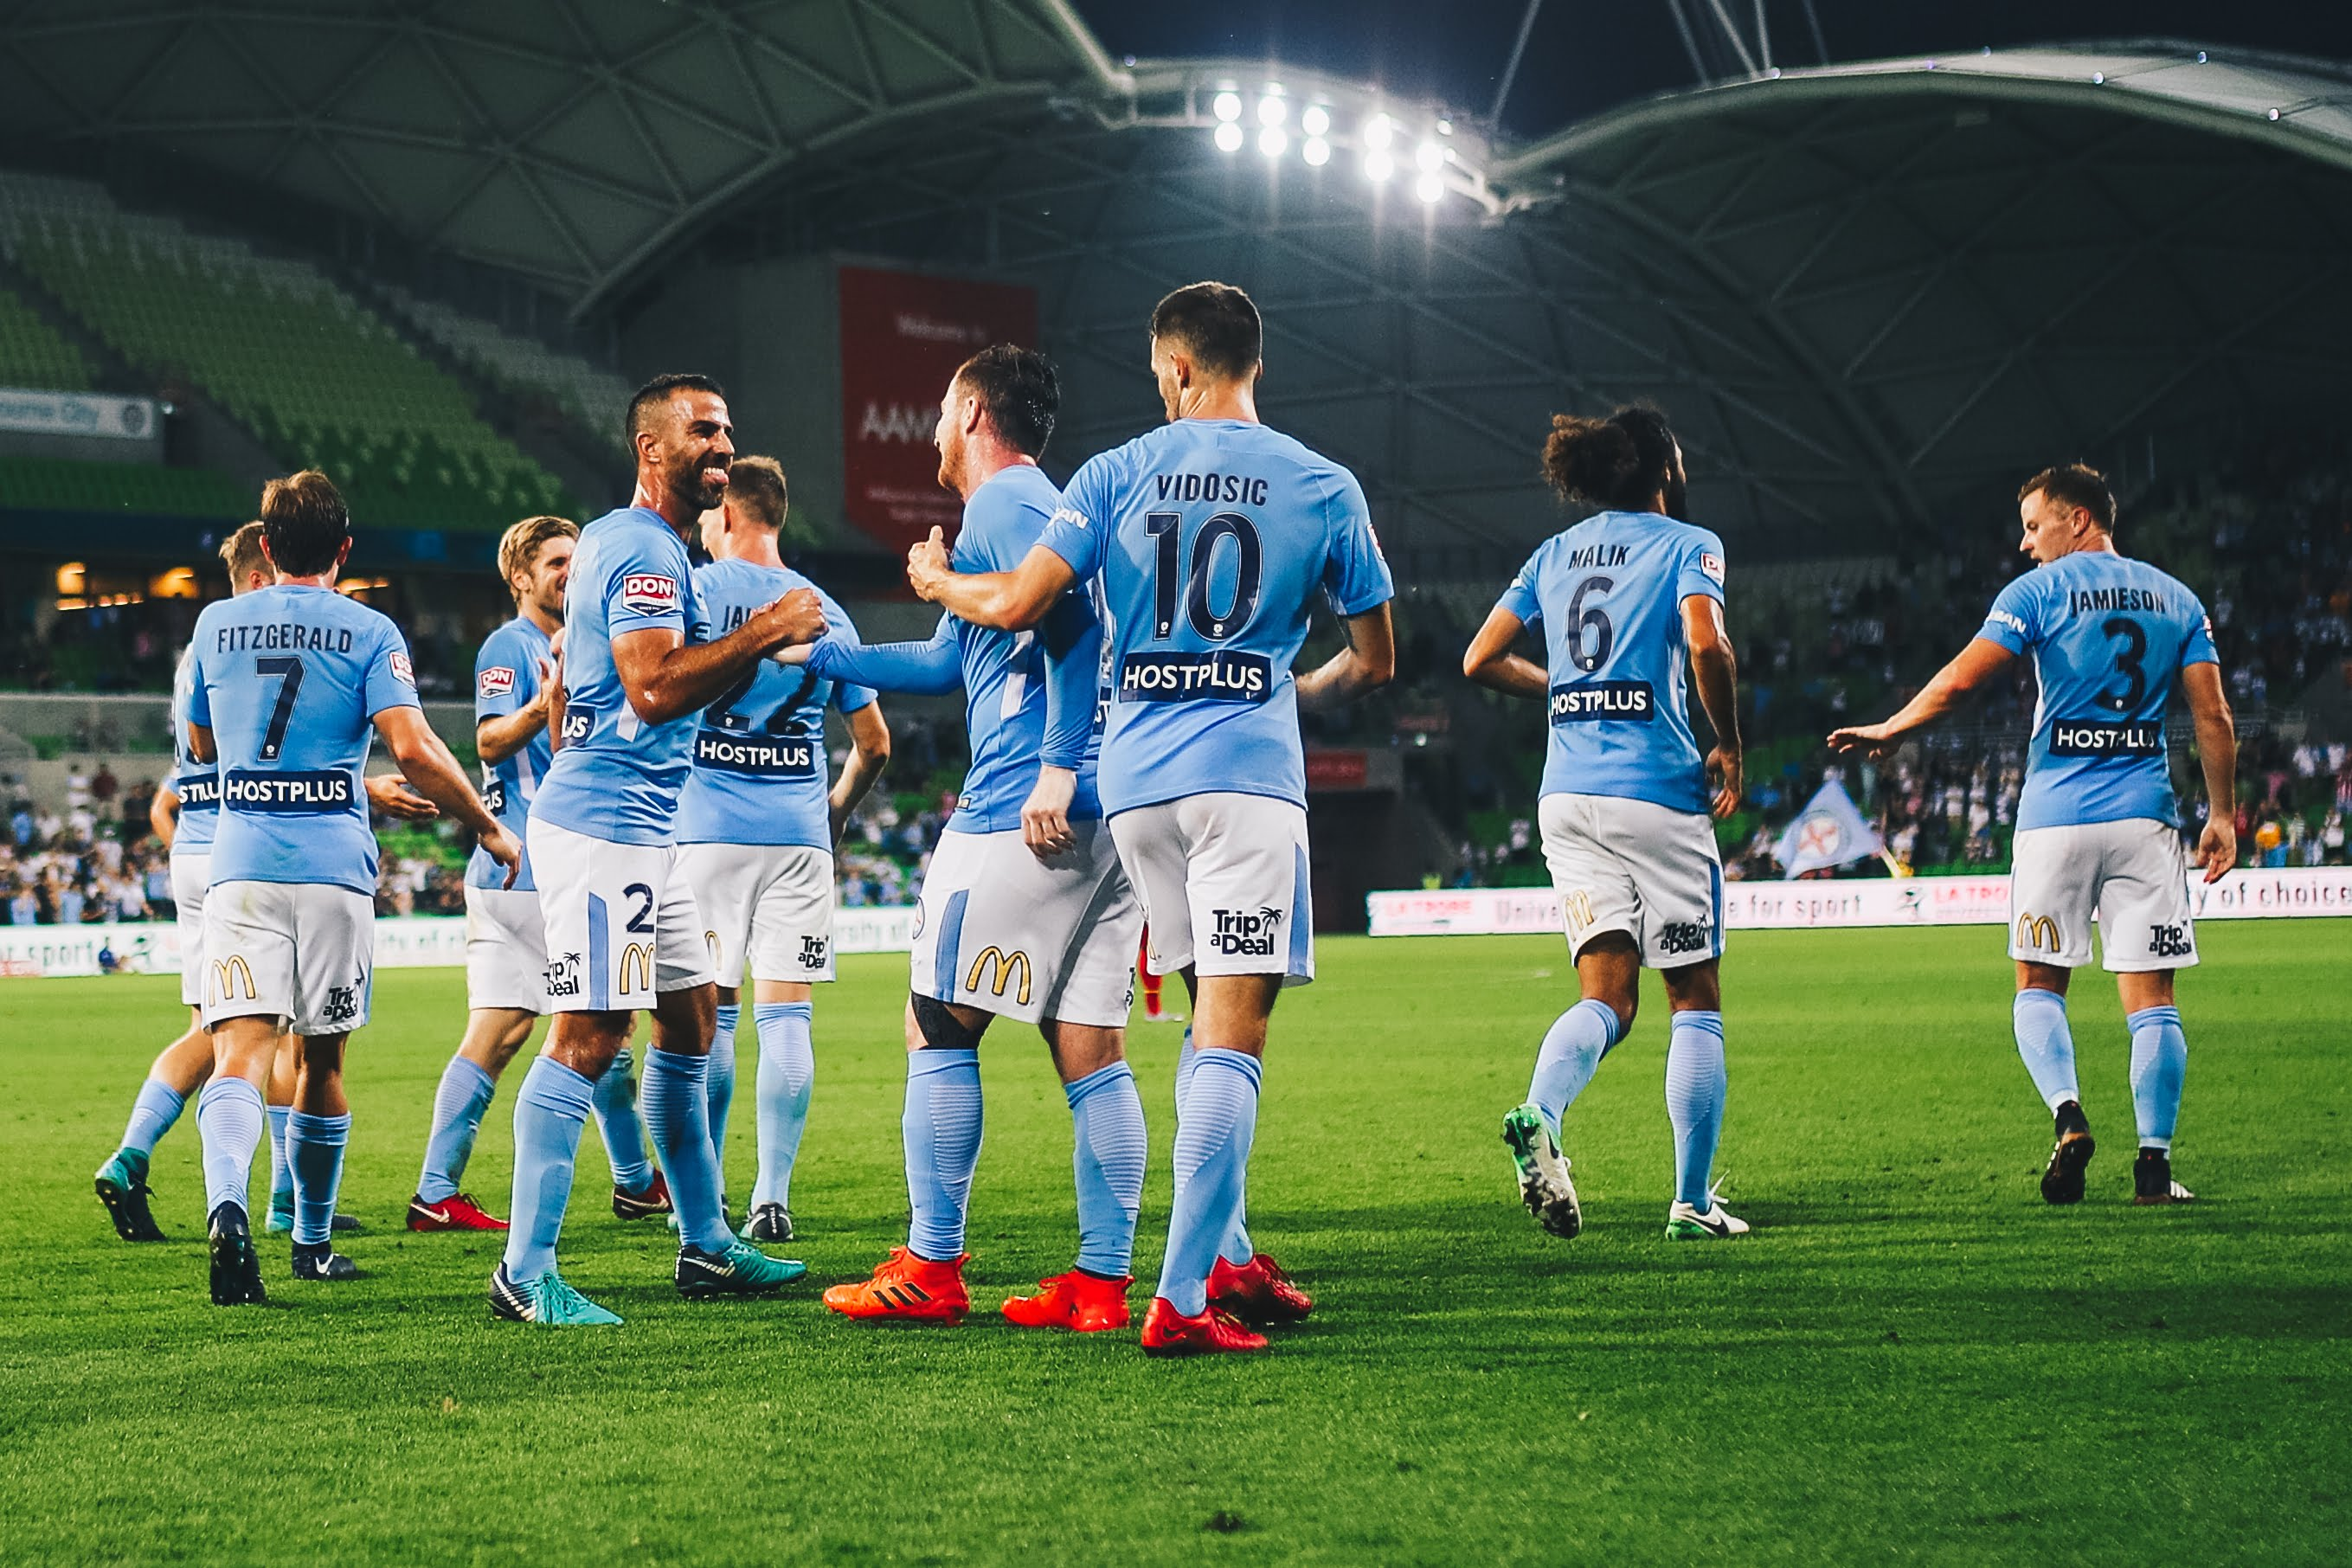 Melbourne City Football Club play in the A-League, and compete across Australia at the highest level